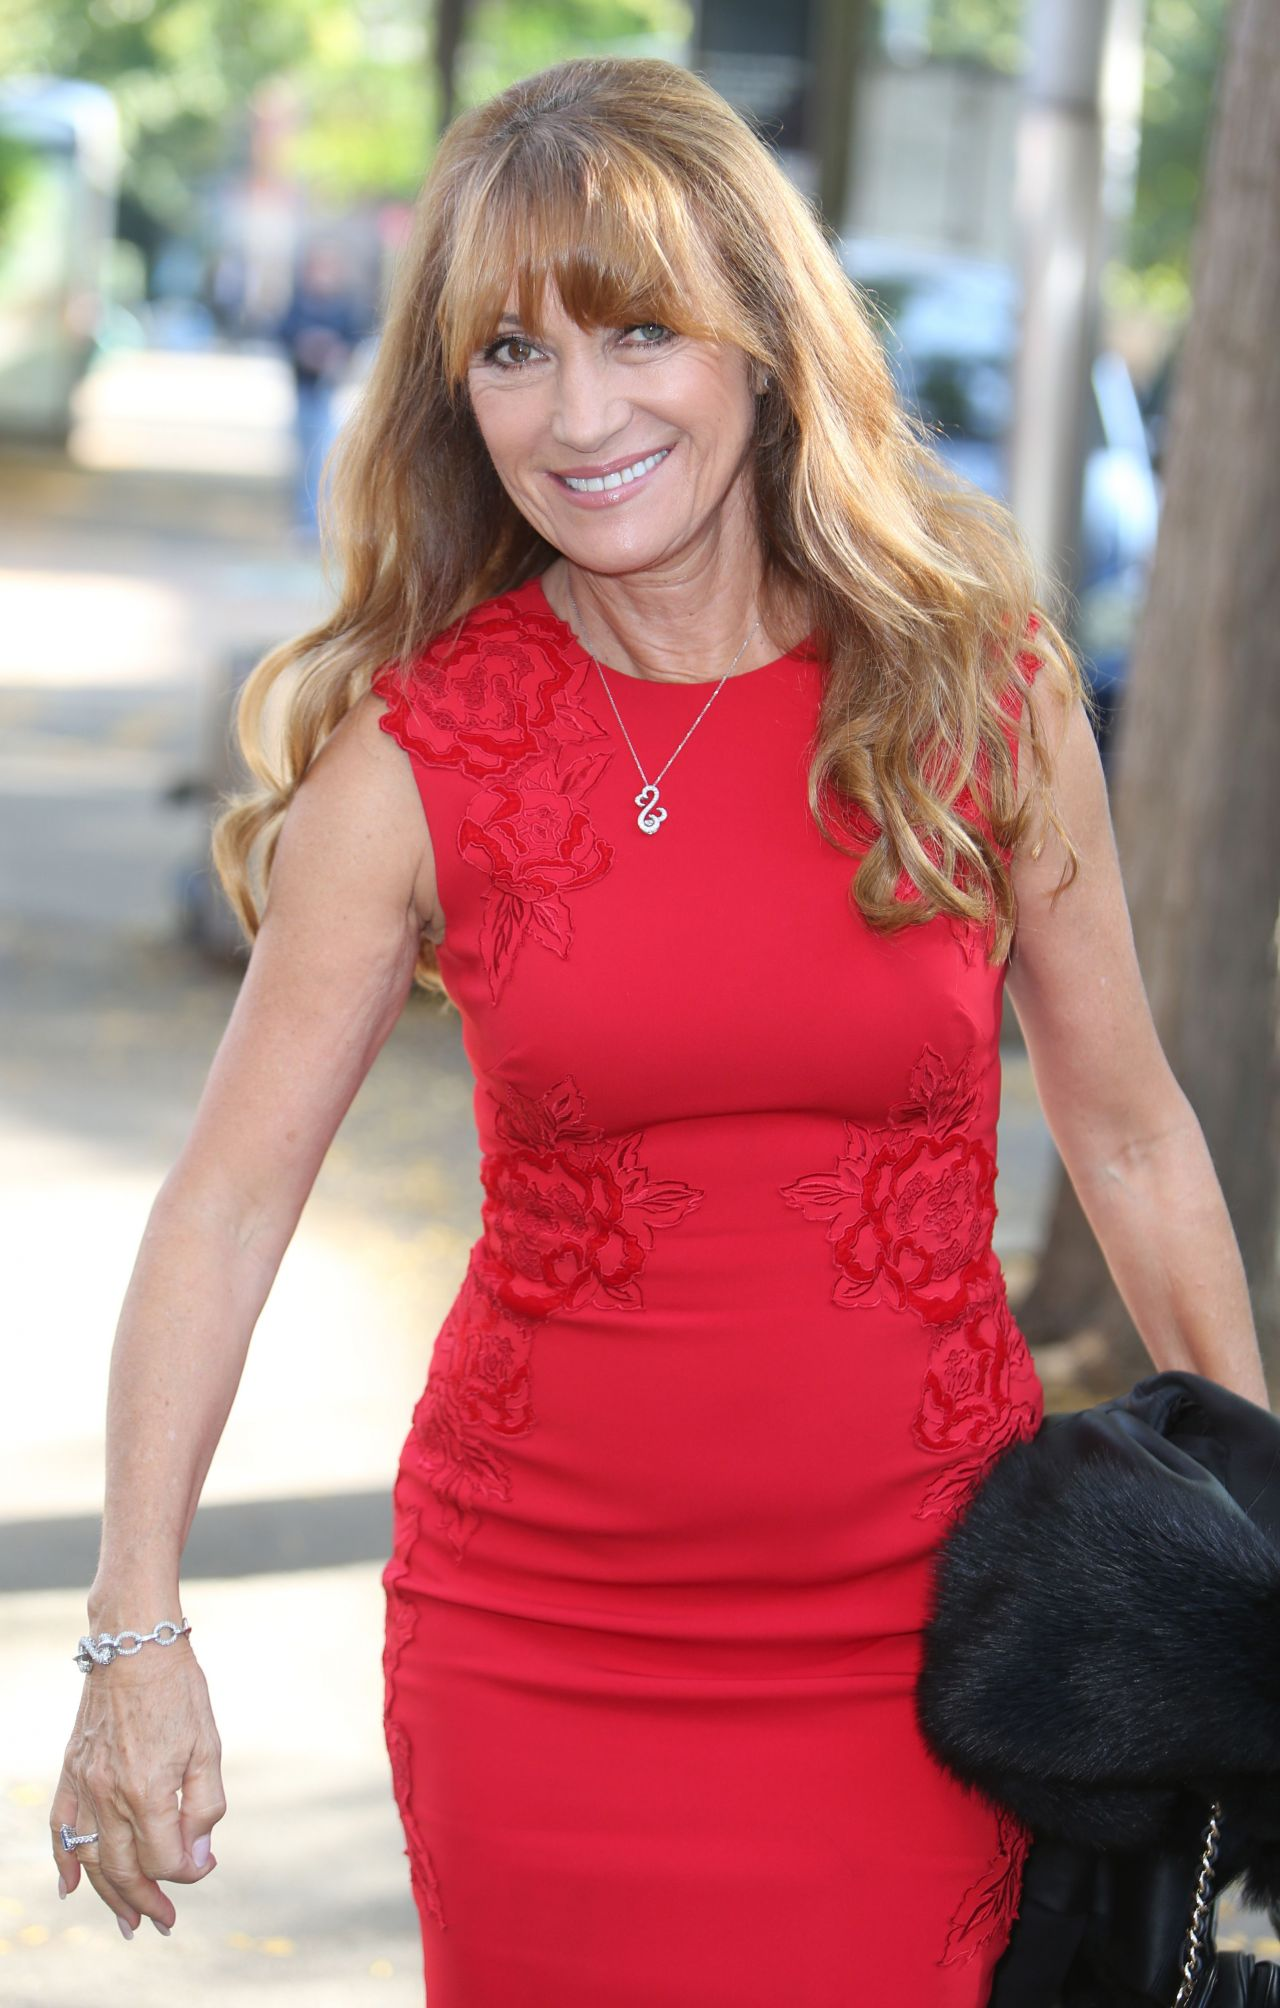 Jane Seymour In Red Dress At The Itv Studios In London 9